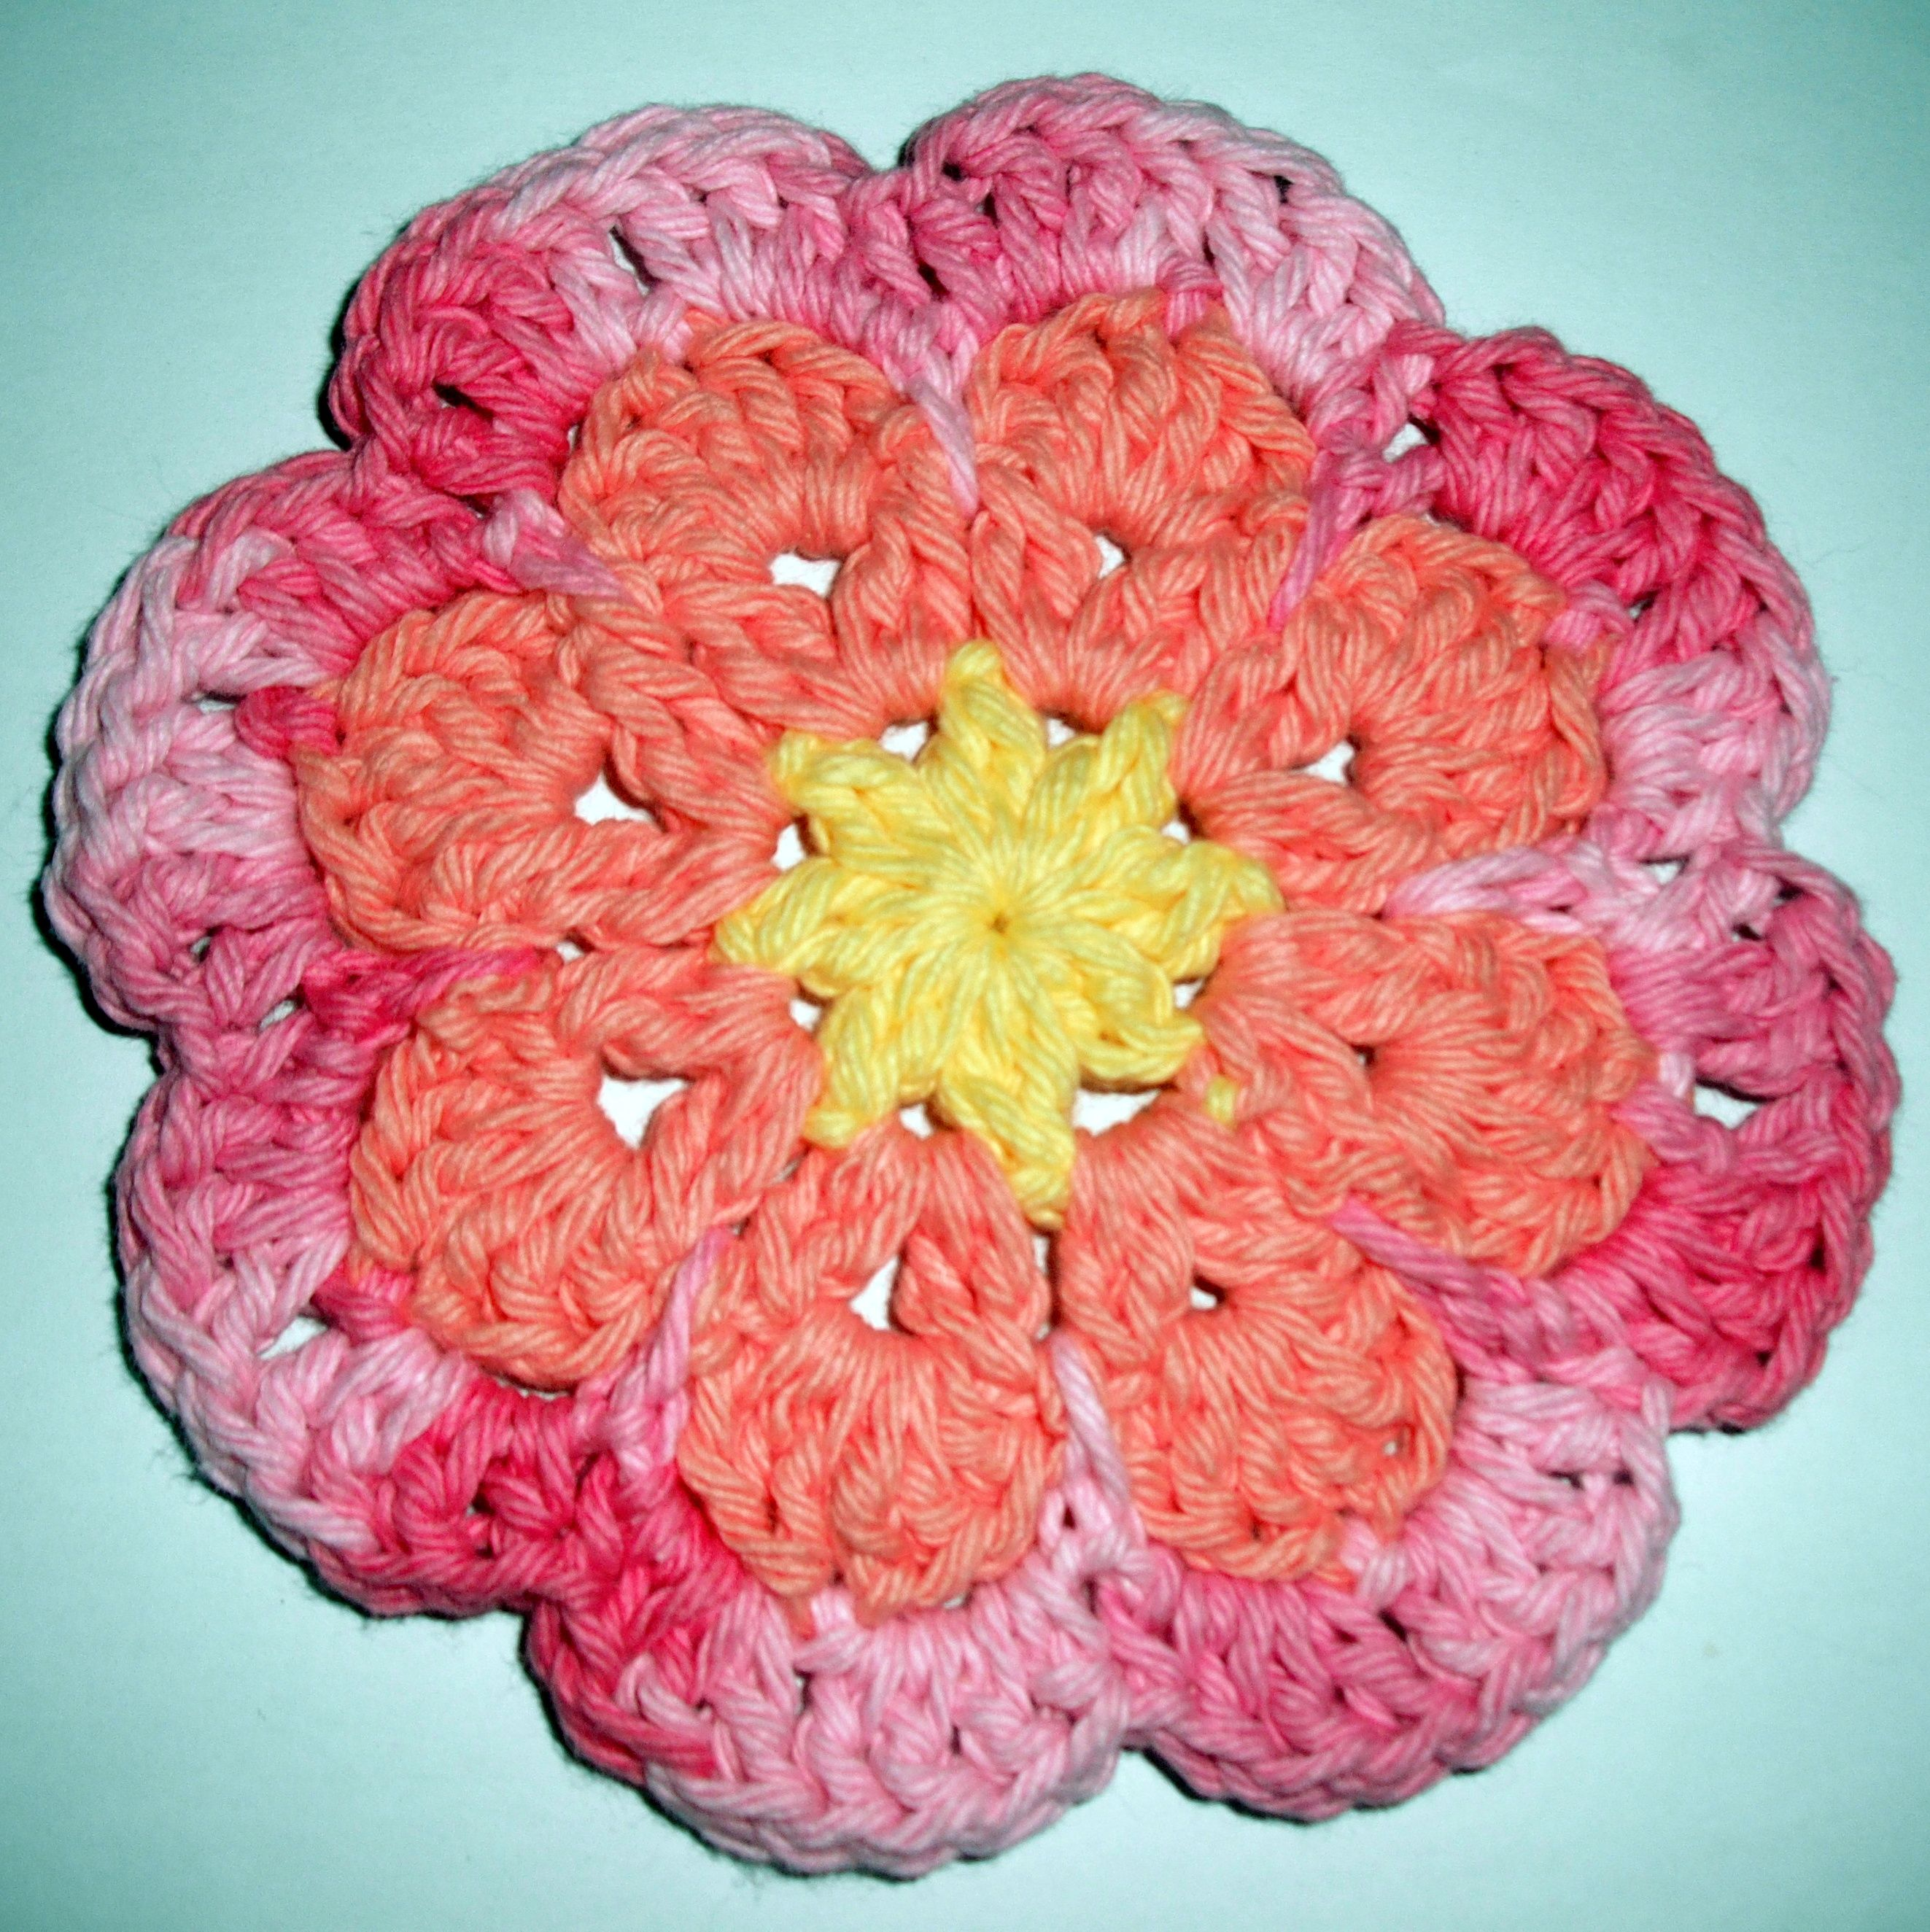 Large flat flower motif coaster free crochet pattern by jessie at large flat flower motif coaster free crochet pattern by bankloansurffo Images